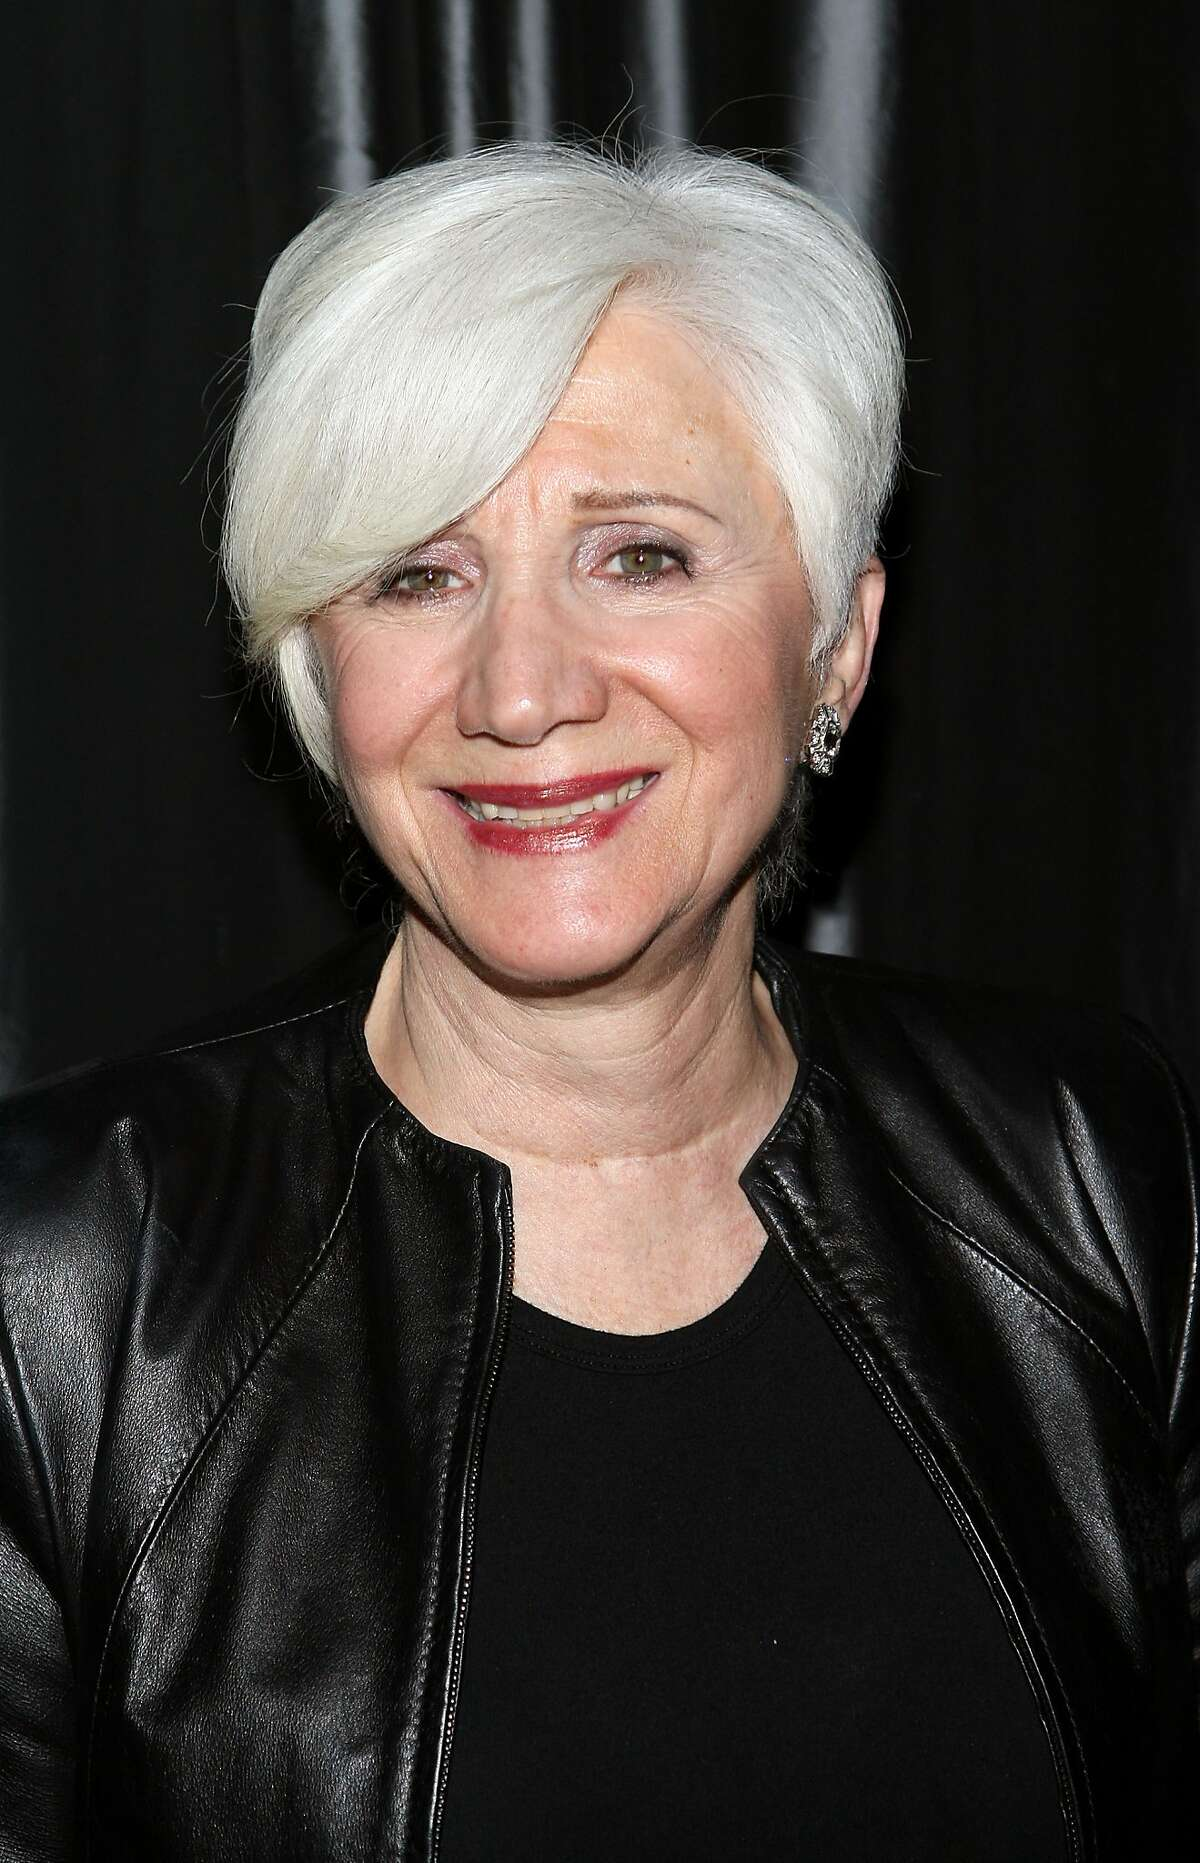 NEW YORK - JANUARY 06: Actress Olympia Dukakis attends the 2007 New York Film Critic's Circle Awards at Spotlight on January 6, 2008 in New York City. (Photo by Stephen Lovekin/Getty Images)